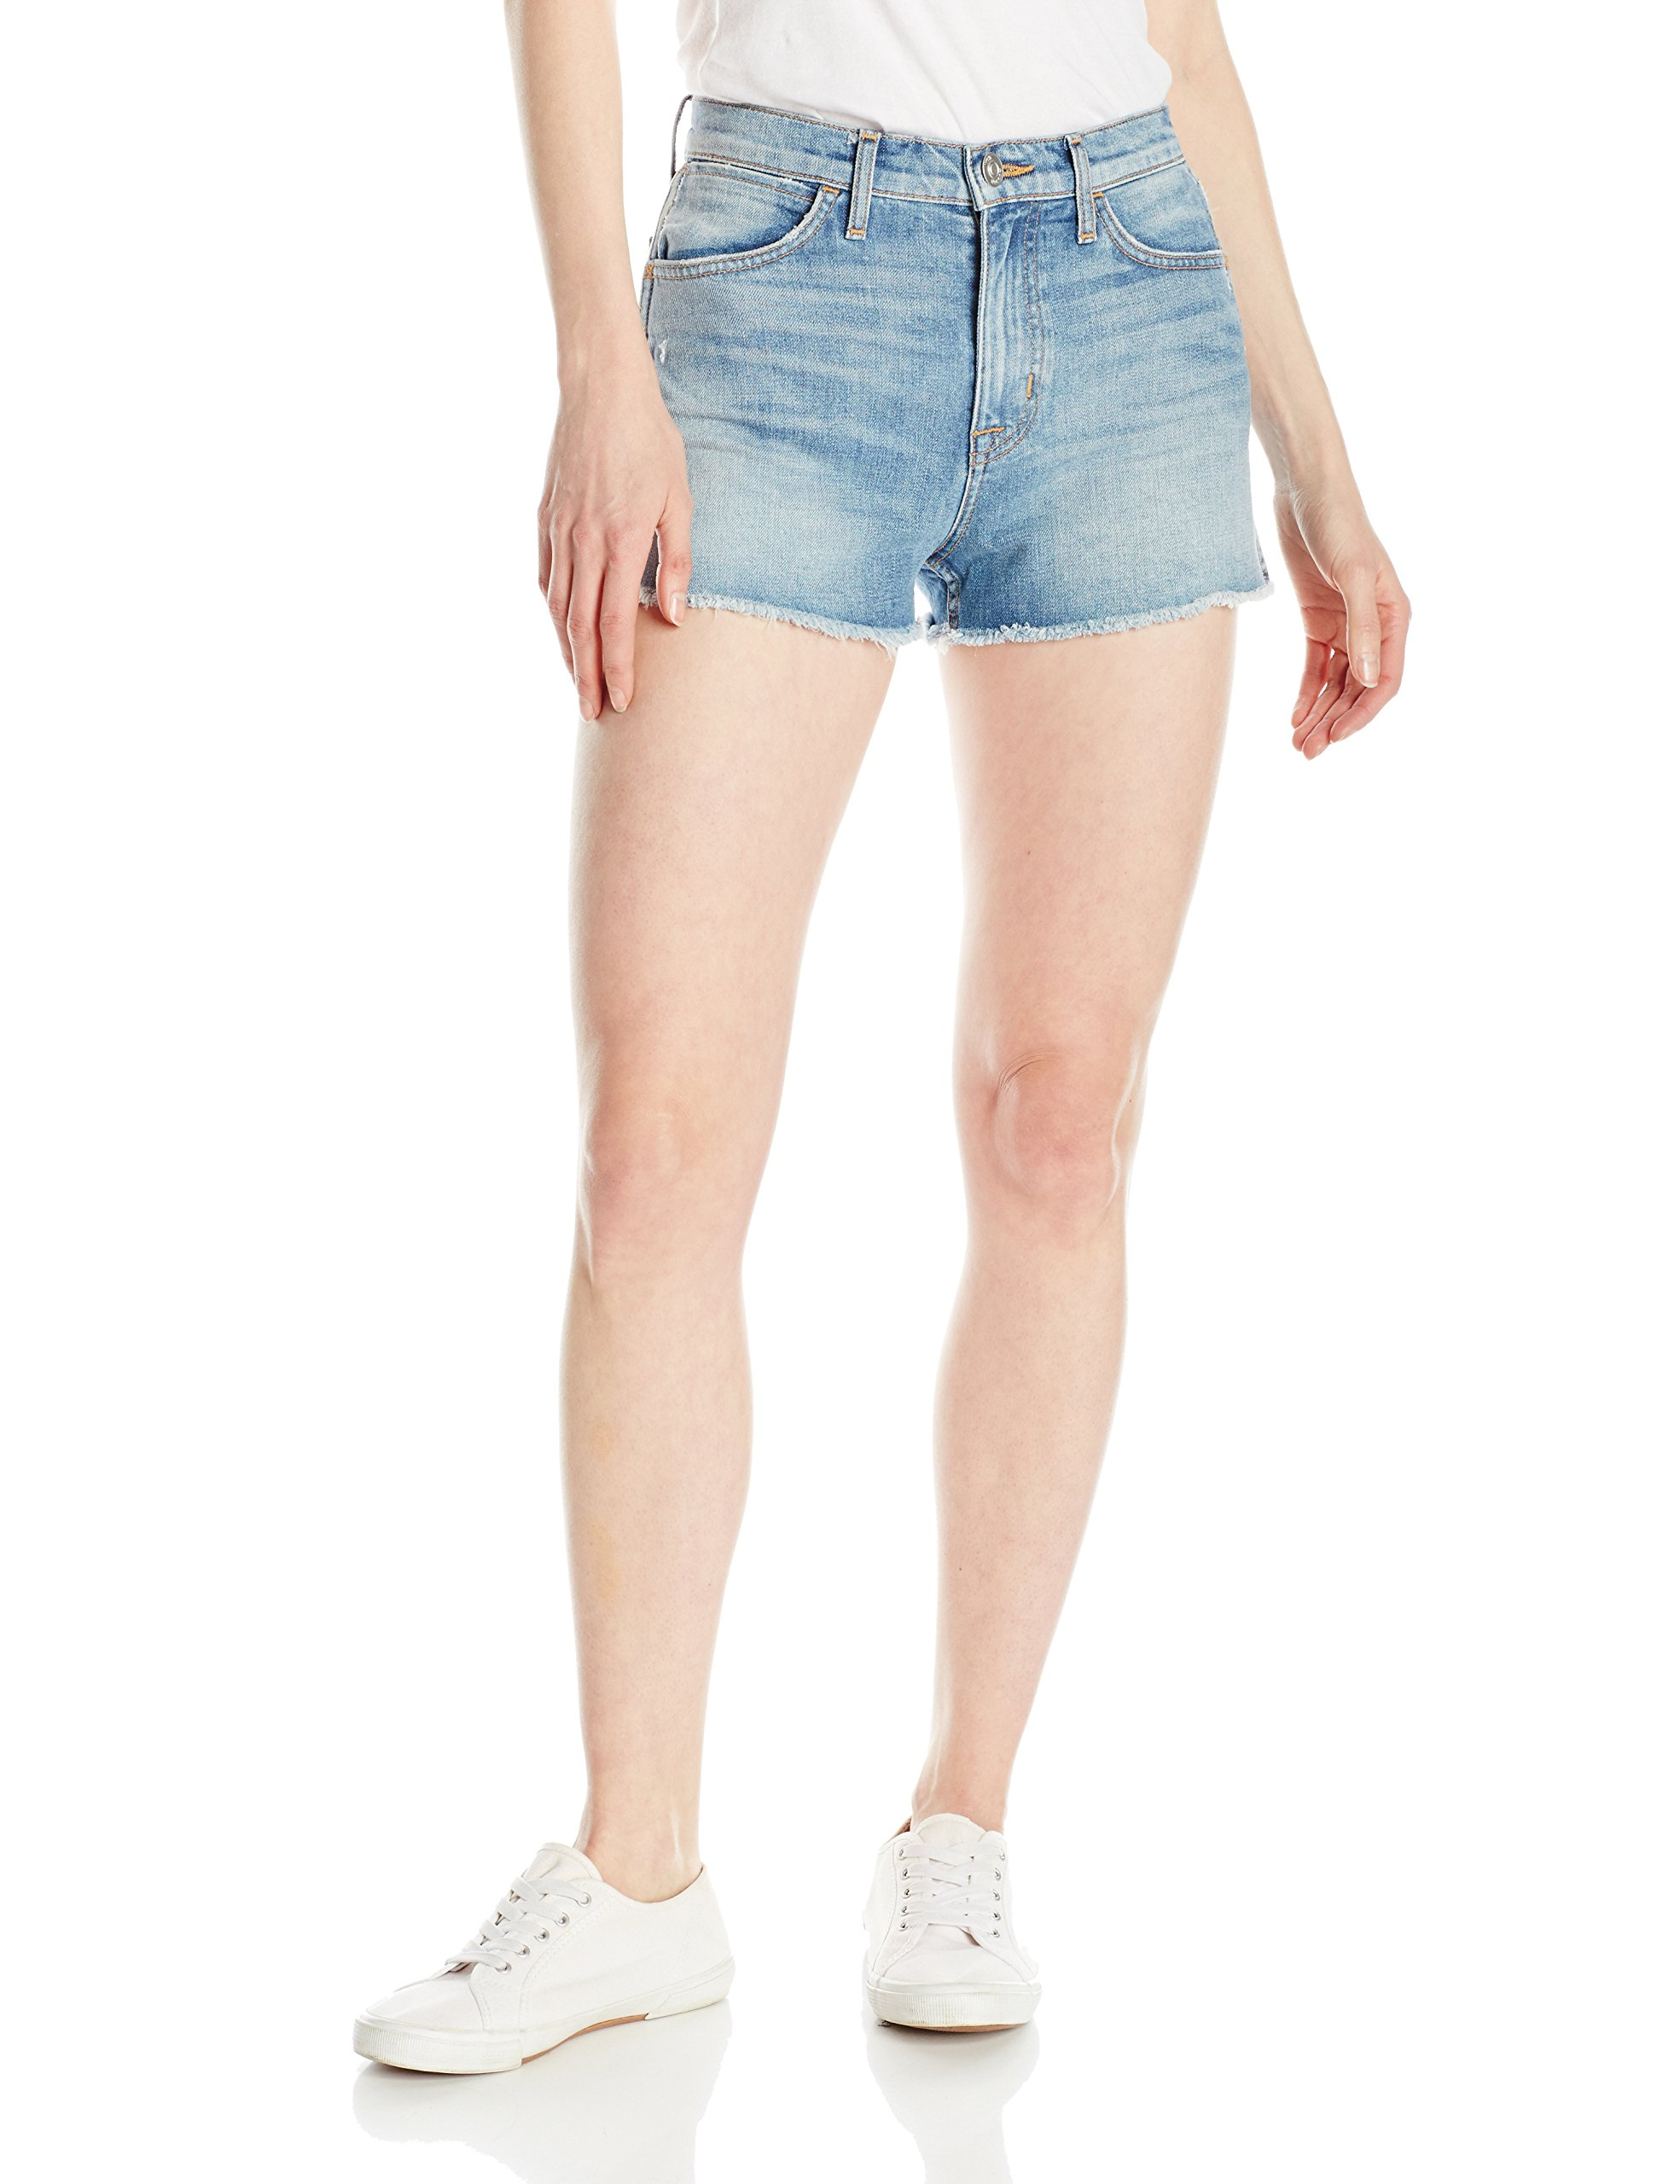 Hudson Jeans Women's Soko High Rise Cut Off 5-Pocket Short, Endurance, 30